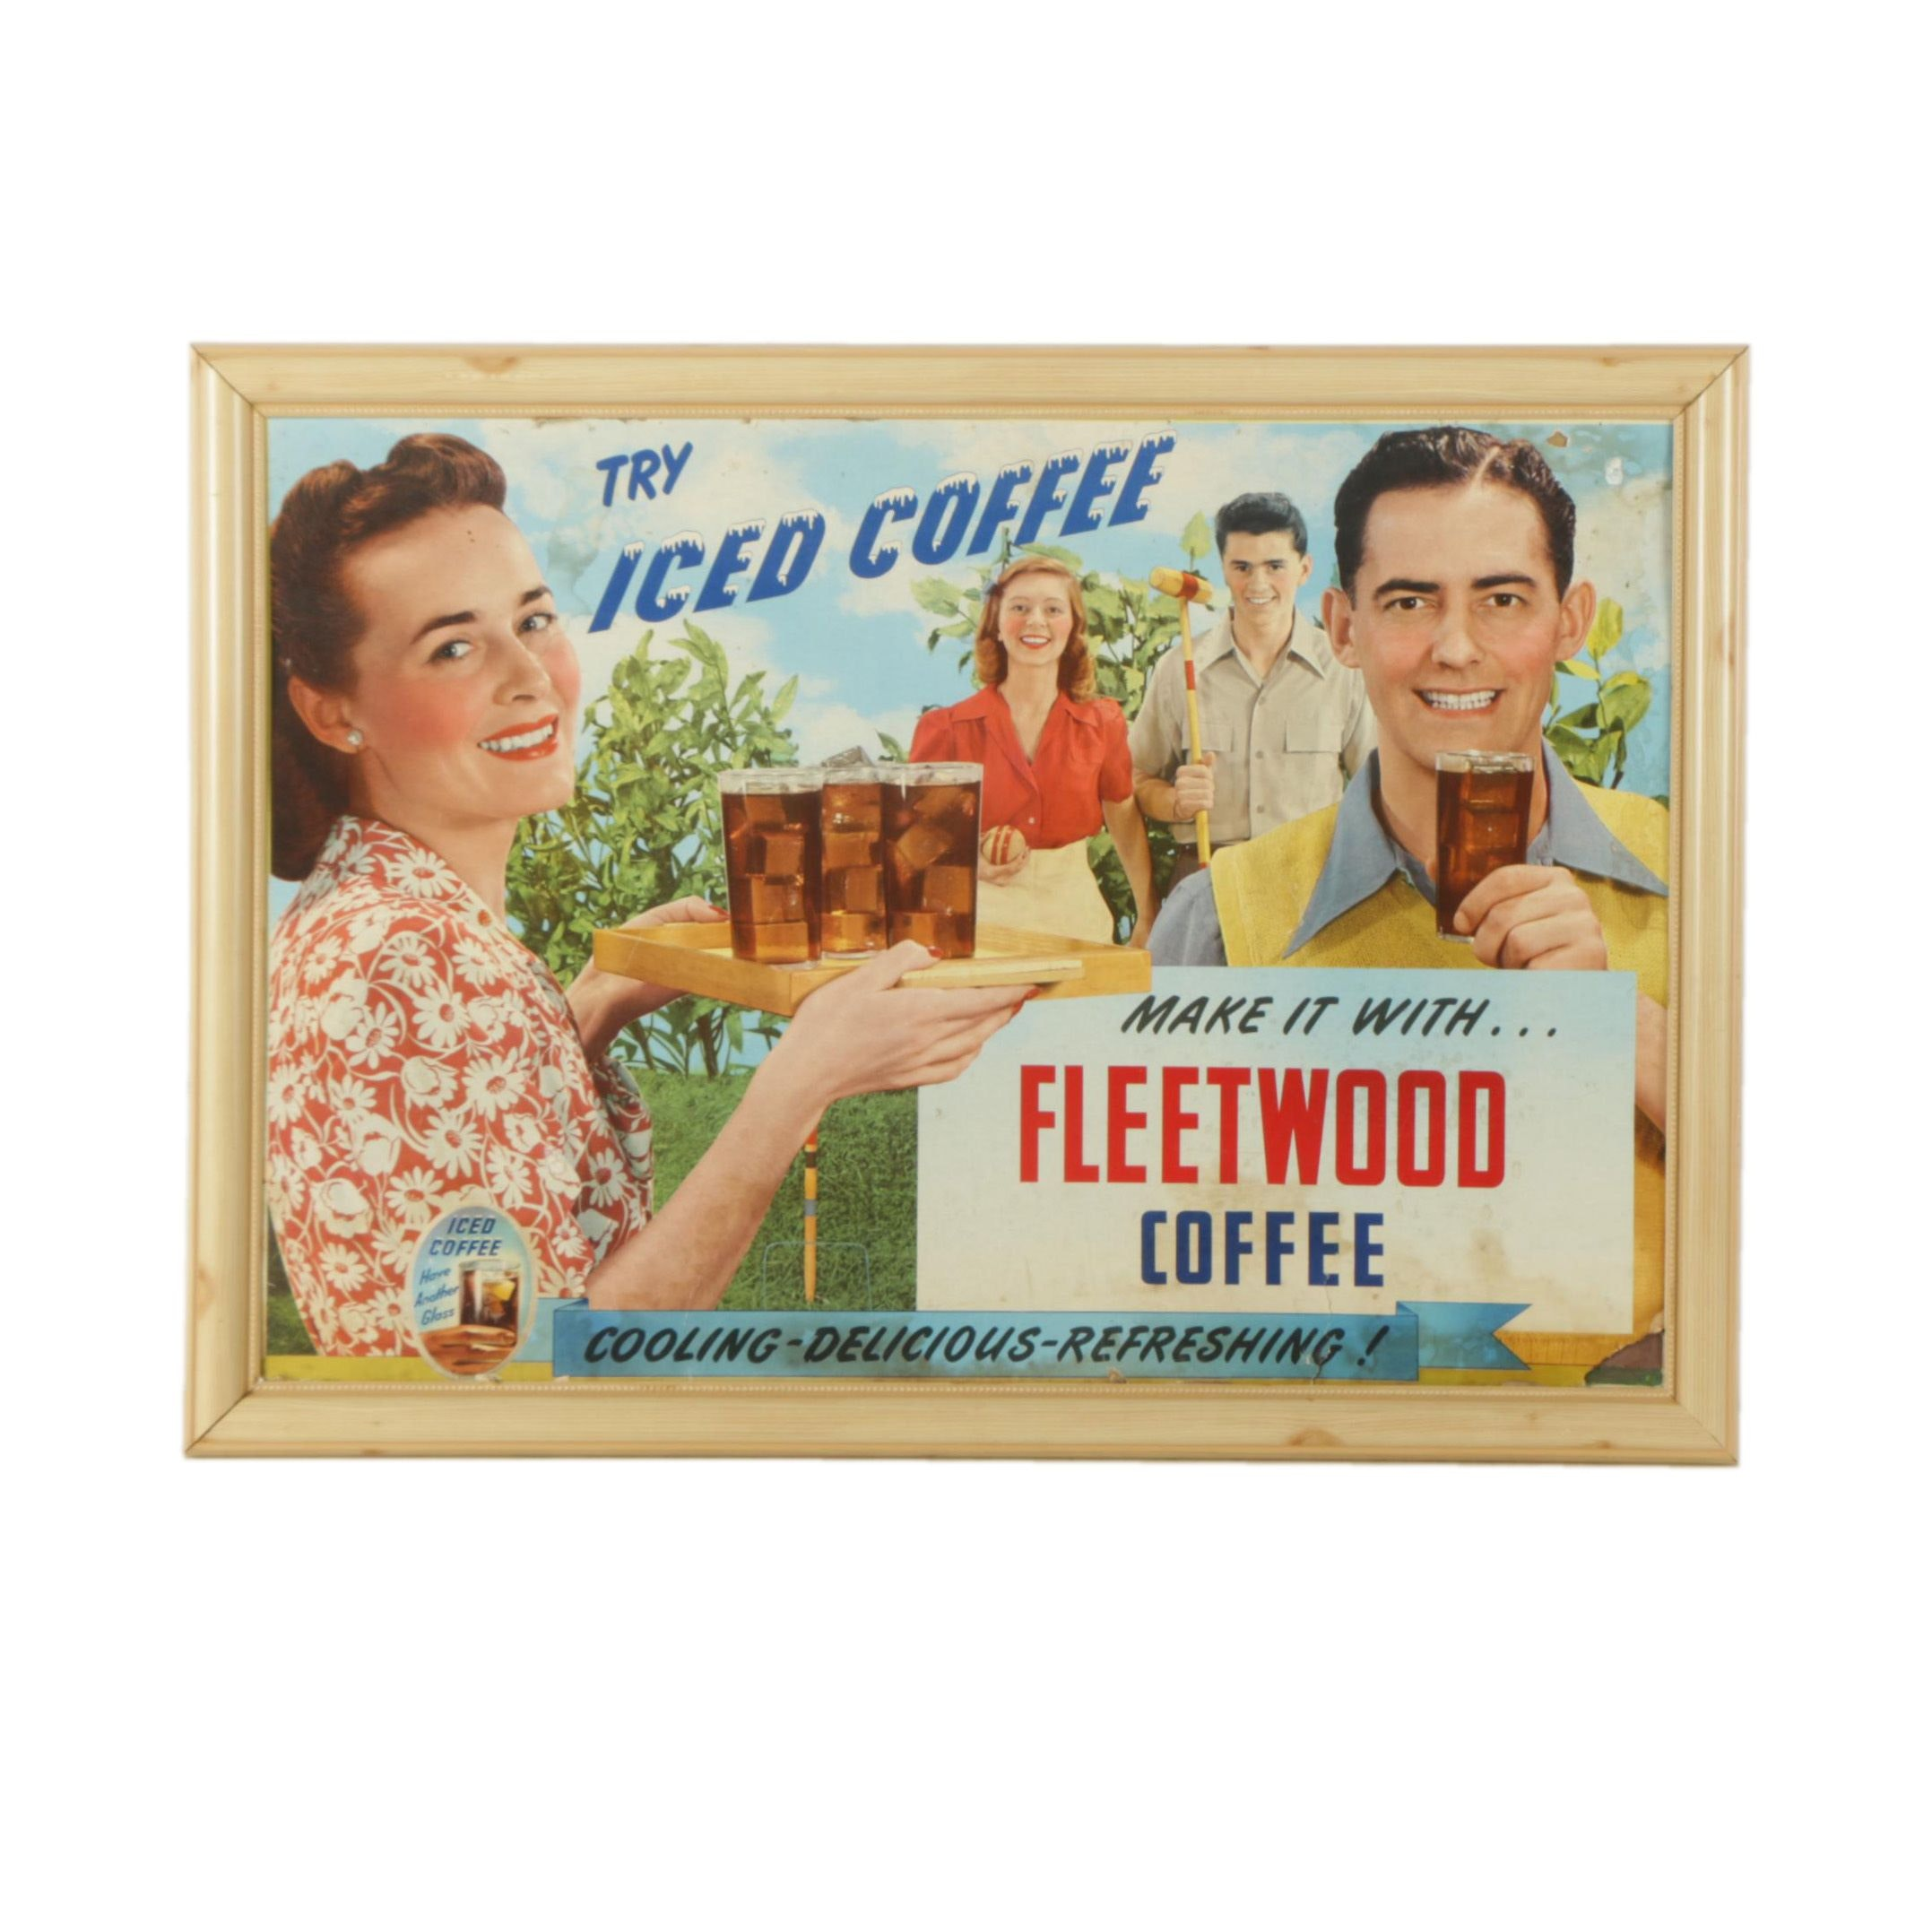 Circa 1950s Advertising Counter Display for Fleetwood Coffee